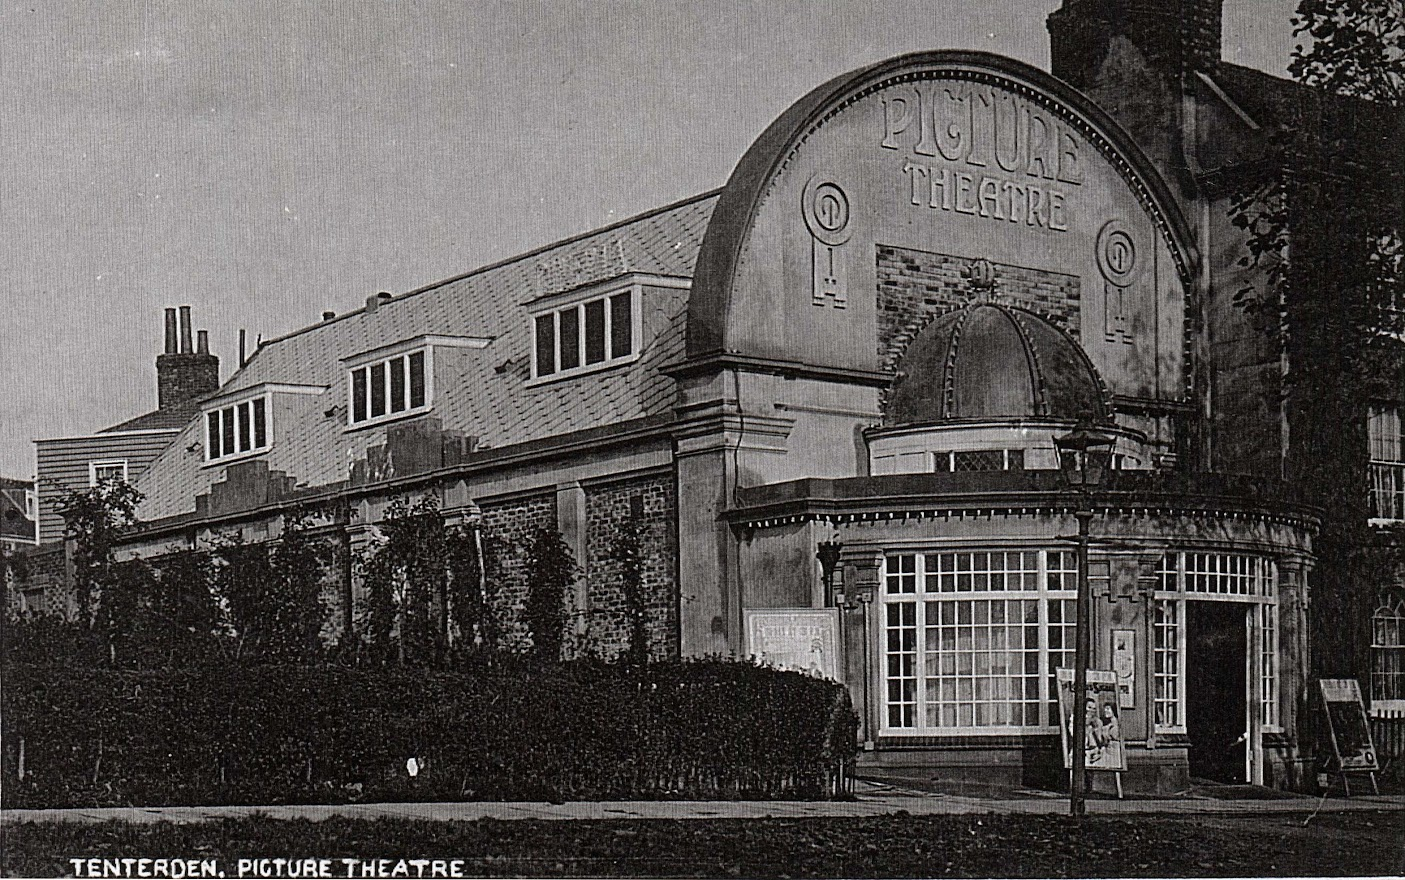 Cinema Palace, Electric Palace, Tenterden